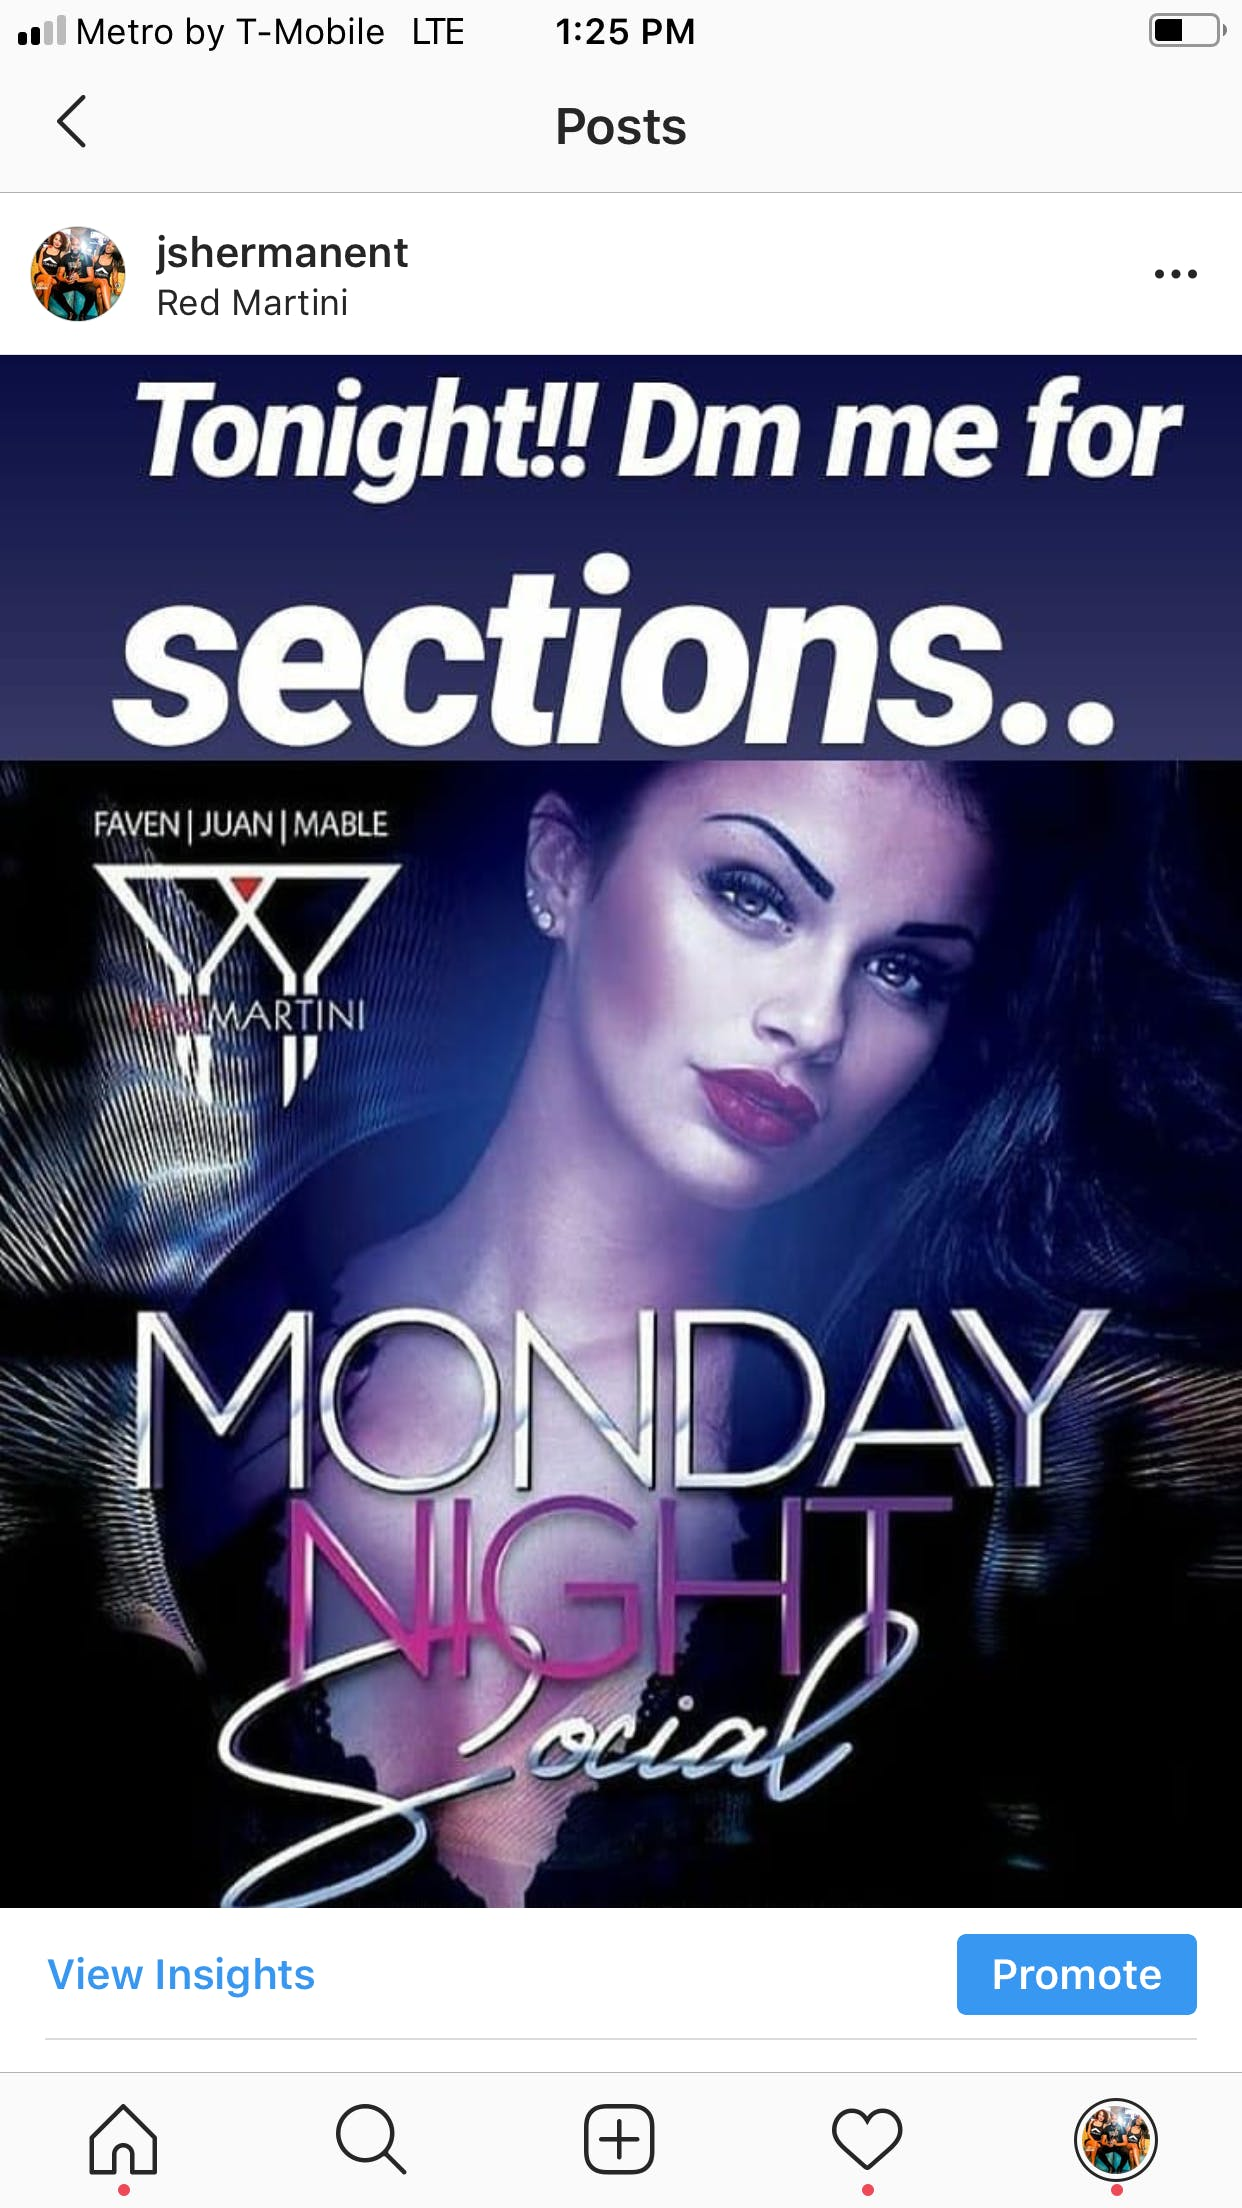 MondayNightSocial at Red Martini....Everyone free til 12 W/RSVP !! For bottle service text 404.808.1249